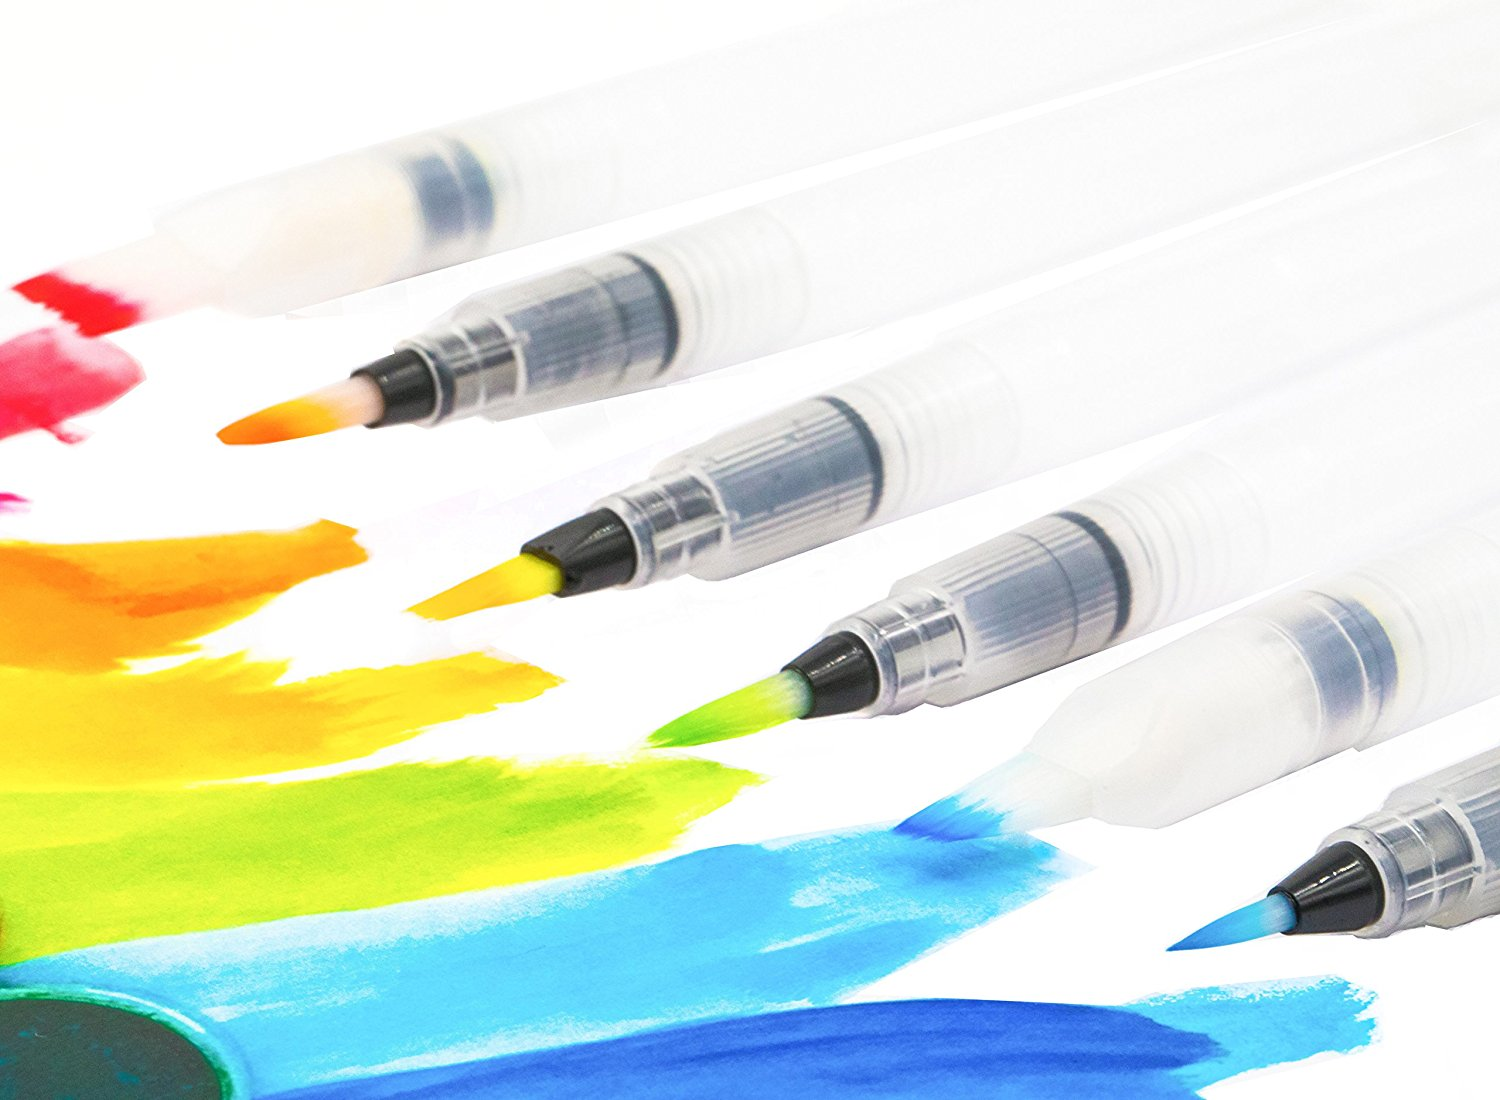 Water Coloring Brush Pens, Set Of 6 Aqua Pen Brush For Watercolor Painting, Water Soluble Pencils, Markers, Solid Colors